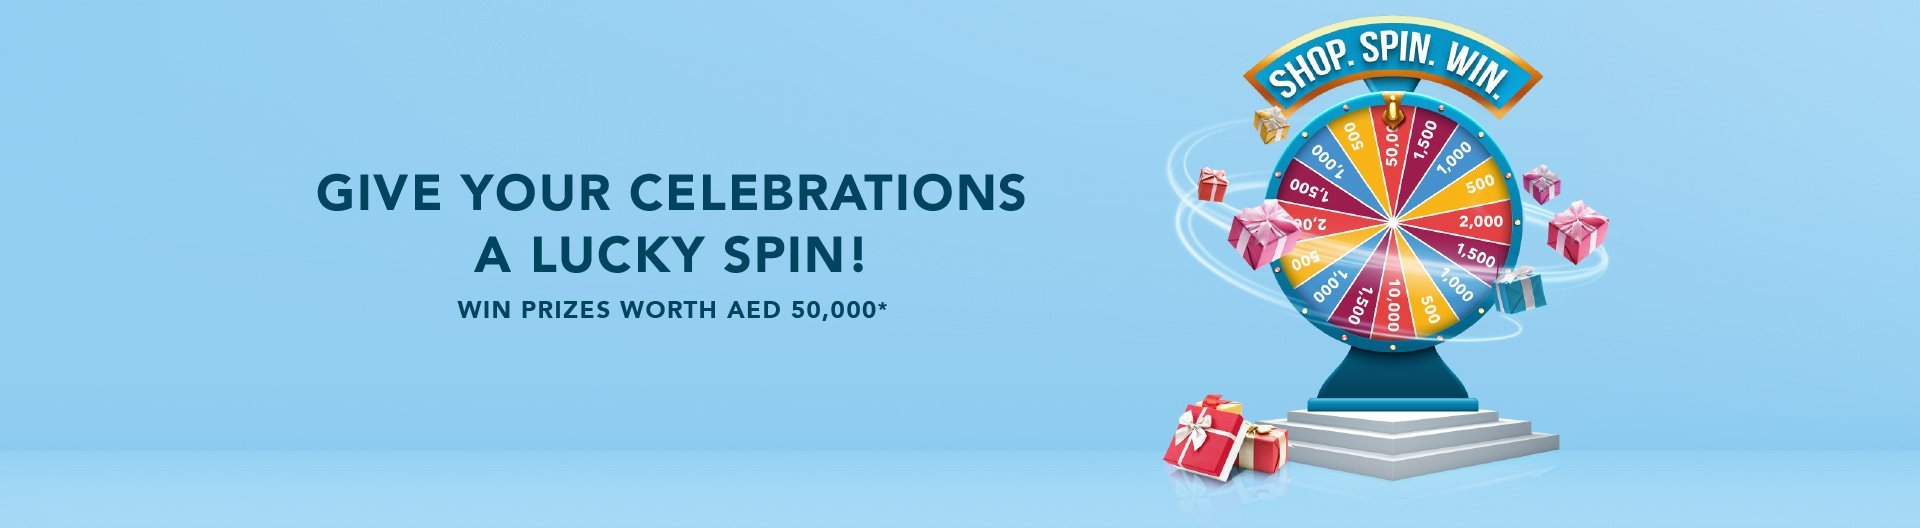 Give Your Celebrations a Lucky Spin!